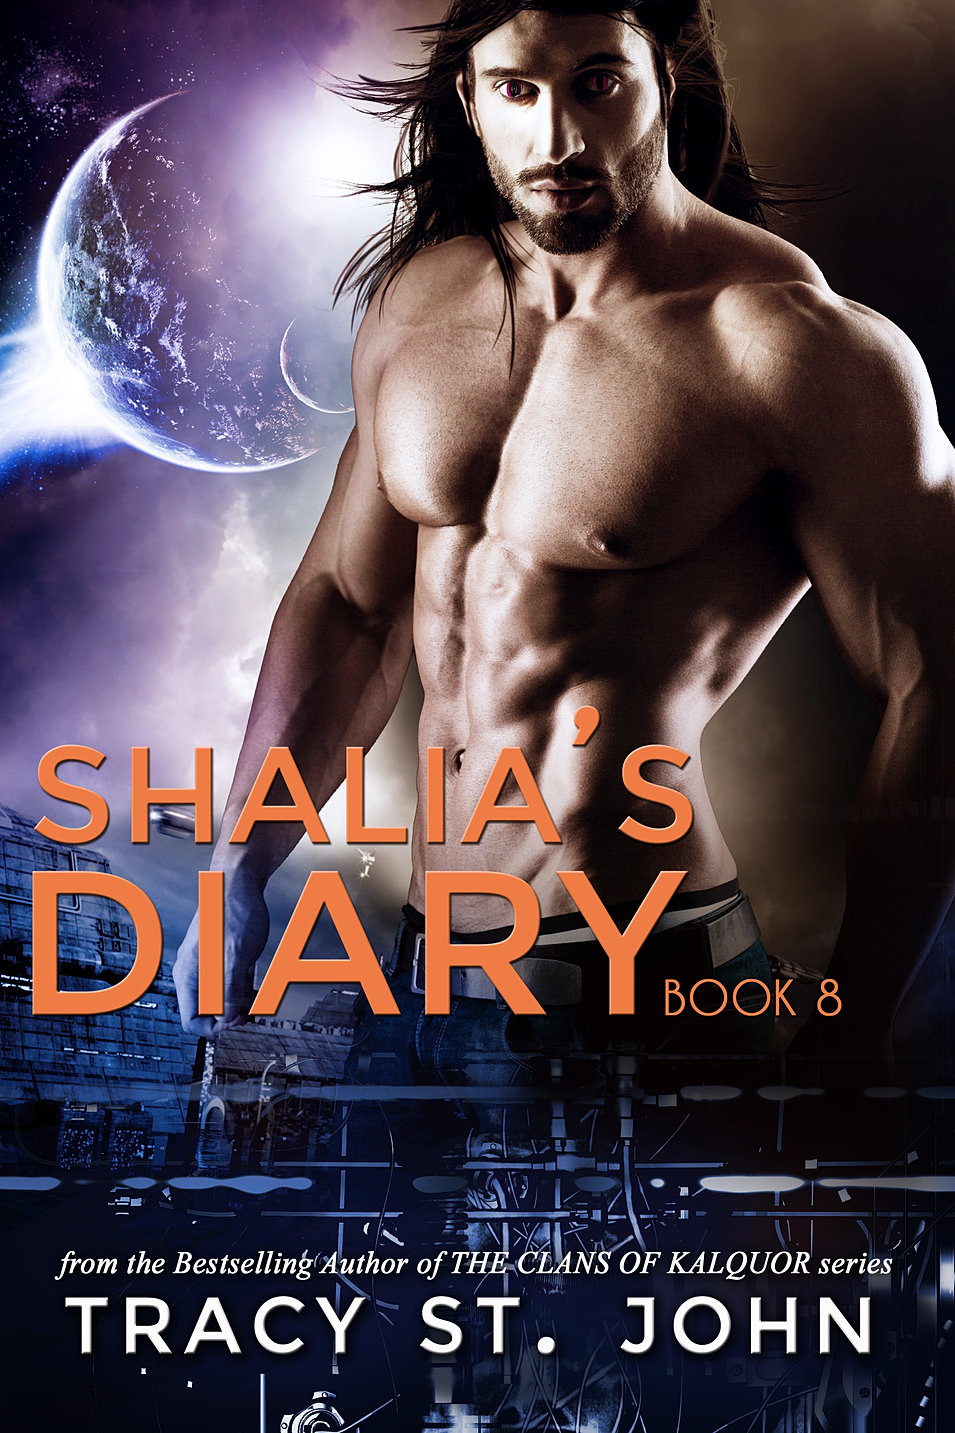 Shalia'sDiaryBook8